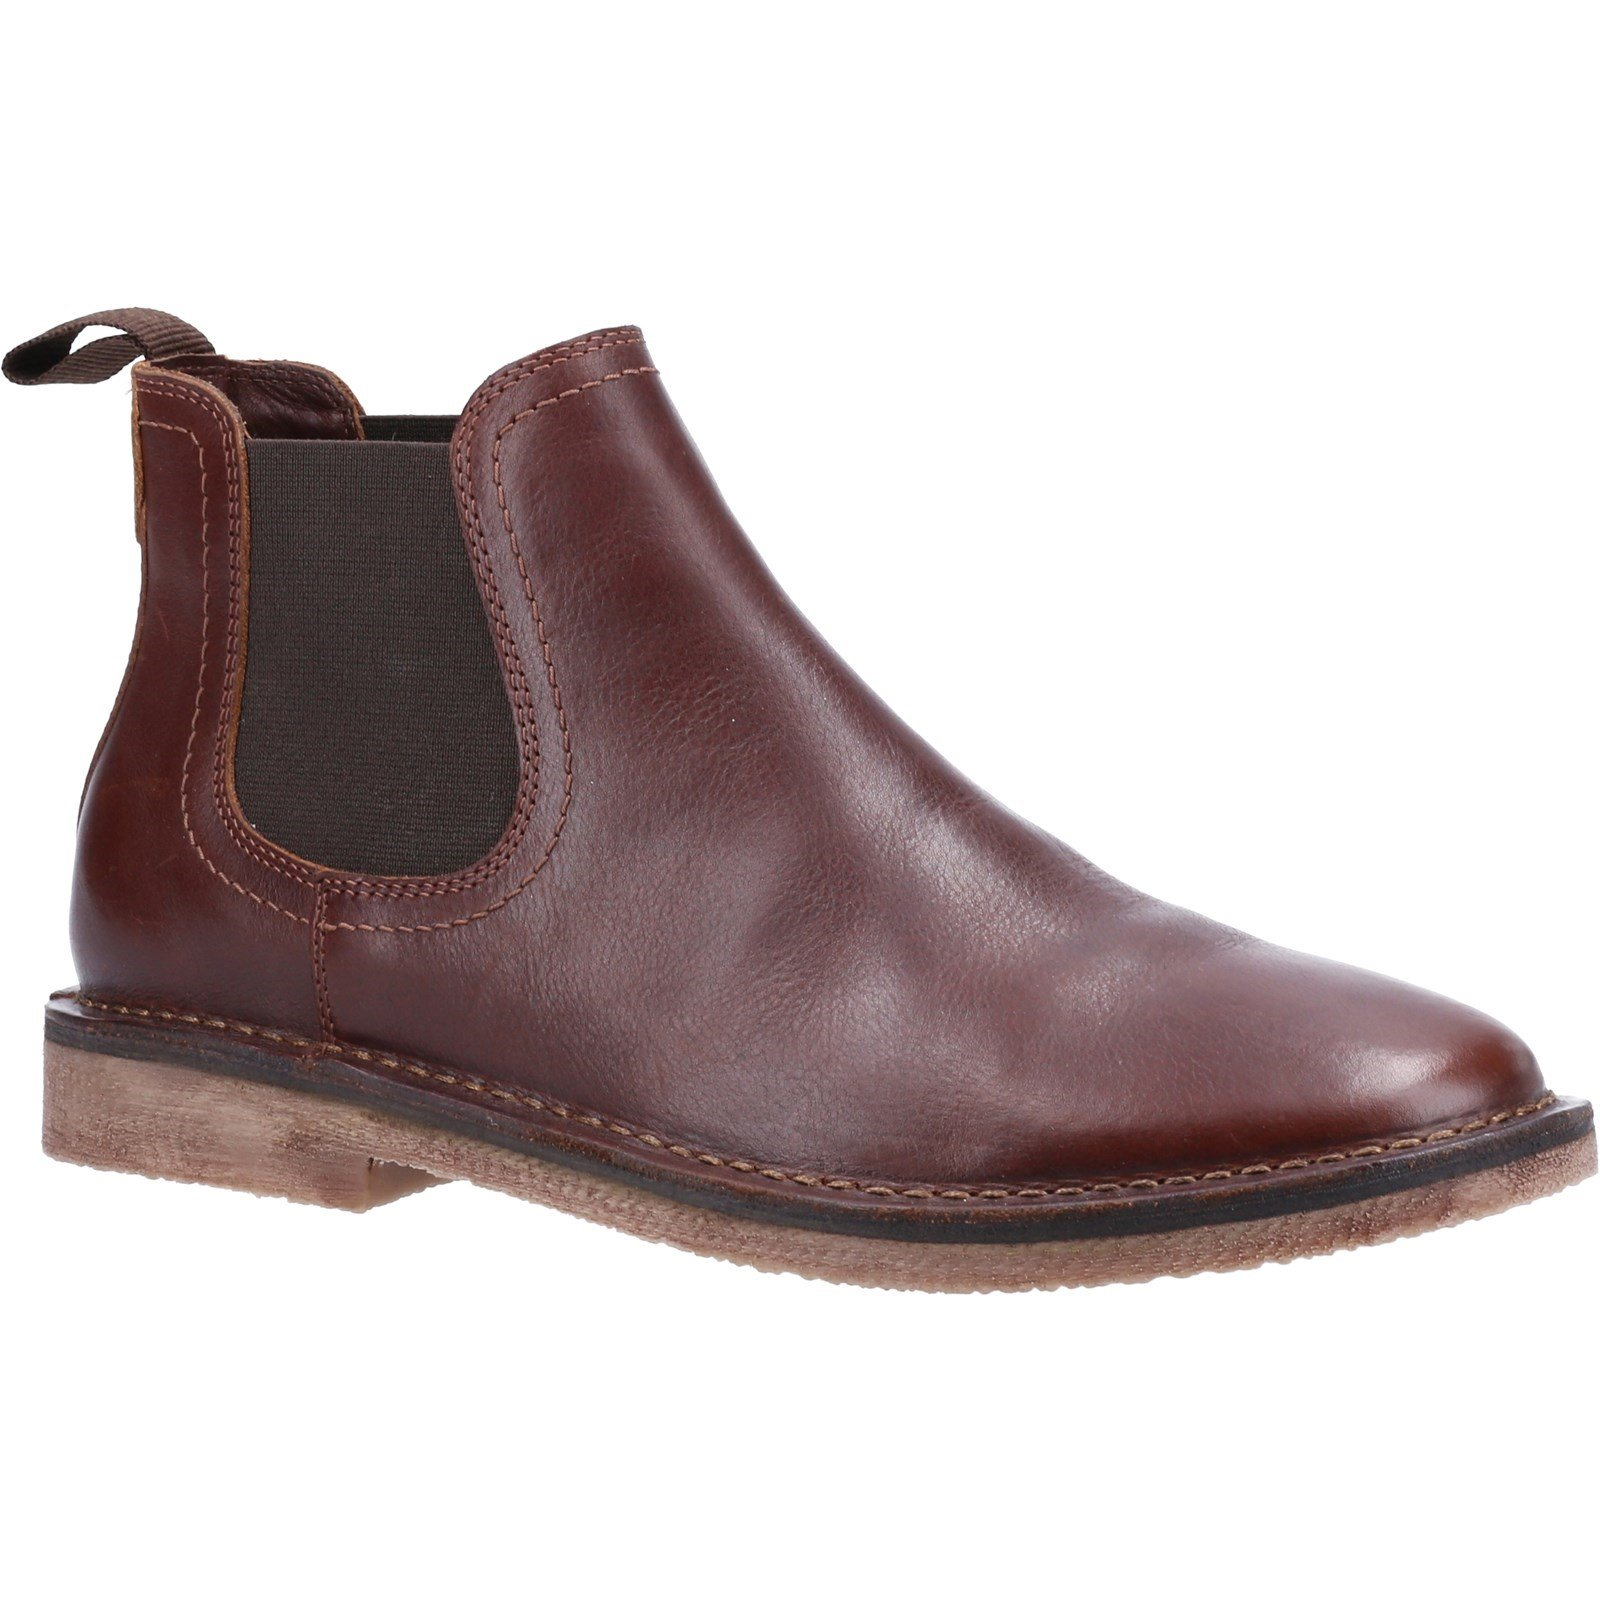 Hush Puppies Men's Shaun Leather Chelsea Boot Various Colours 32897 - Brown 8